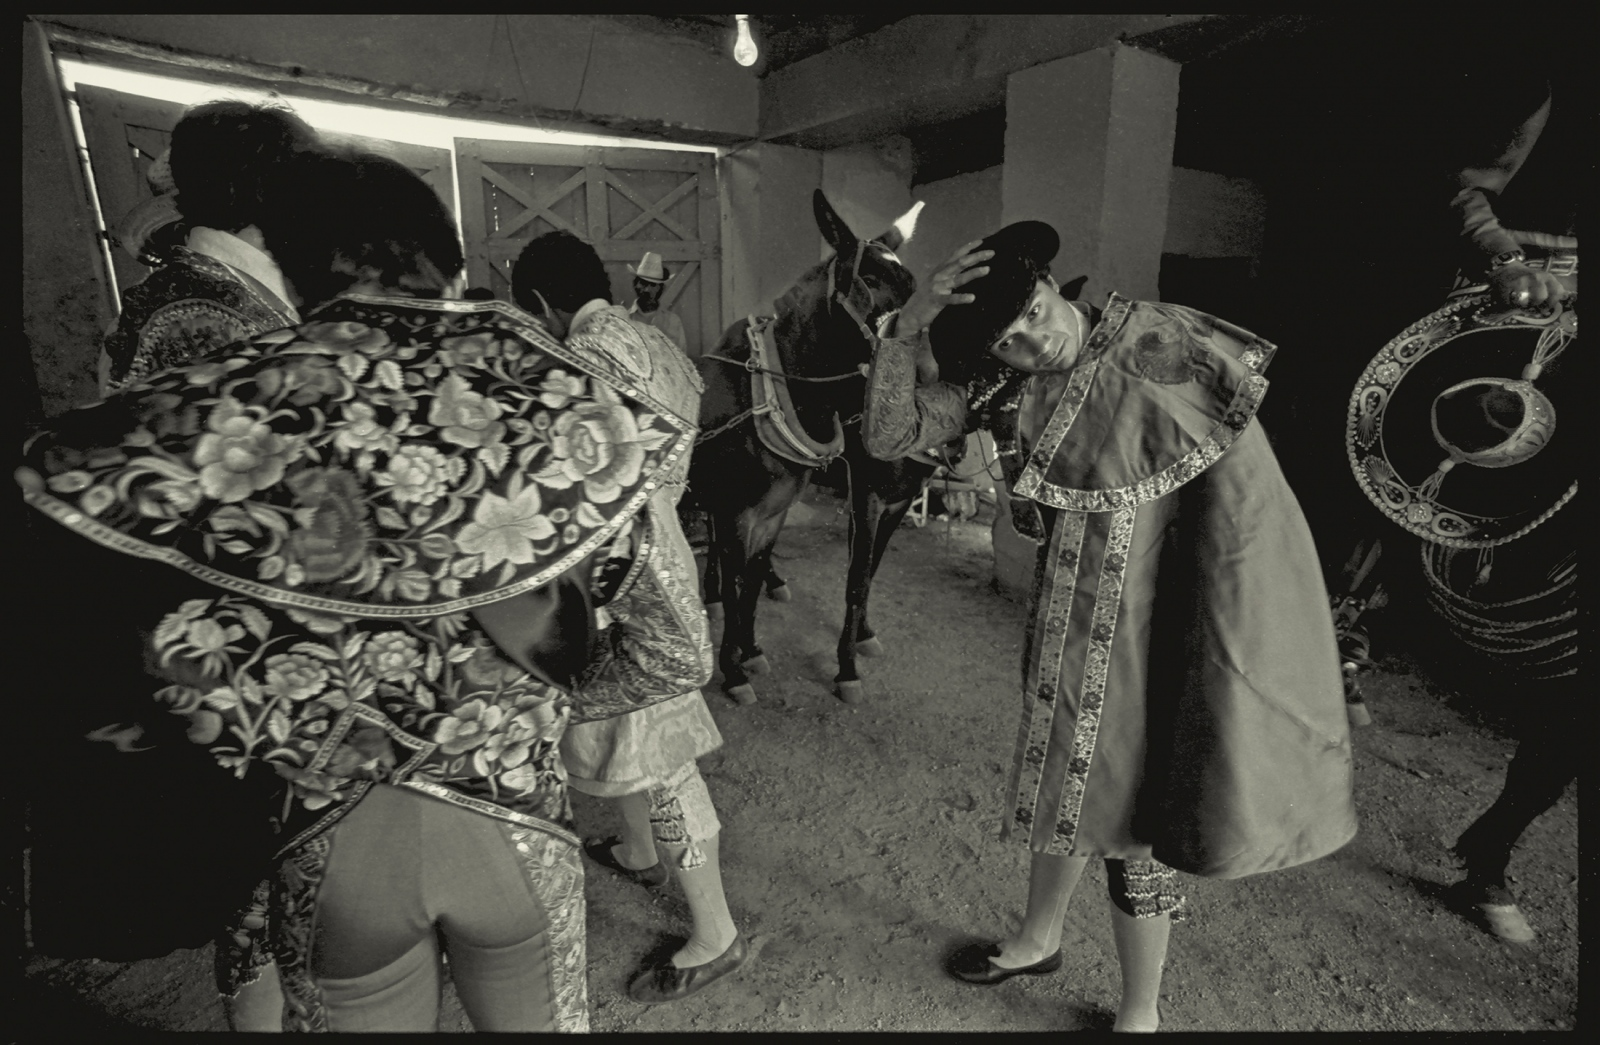 Matadors prepare for bullfight, Nogales, Sonora, Mexico.1980.